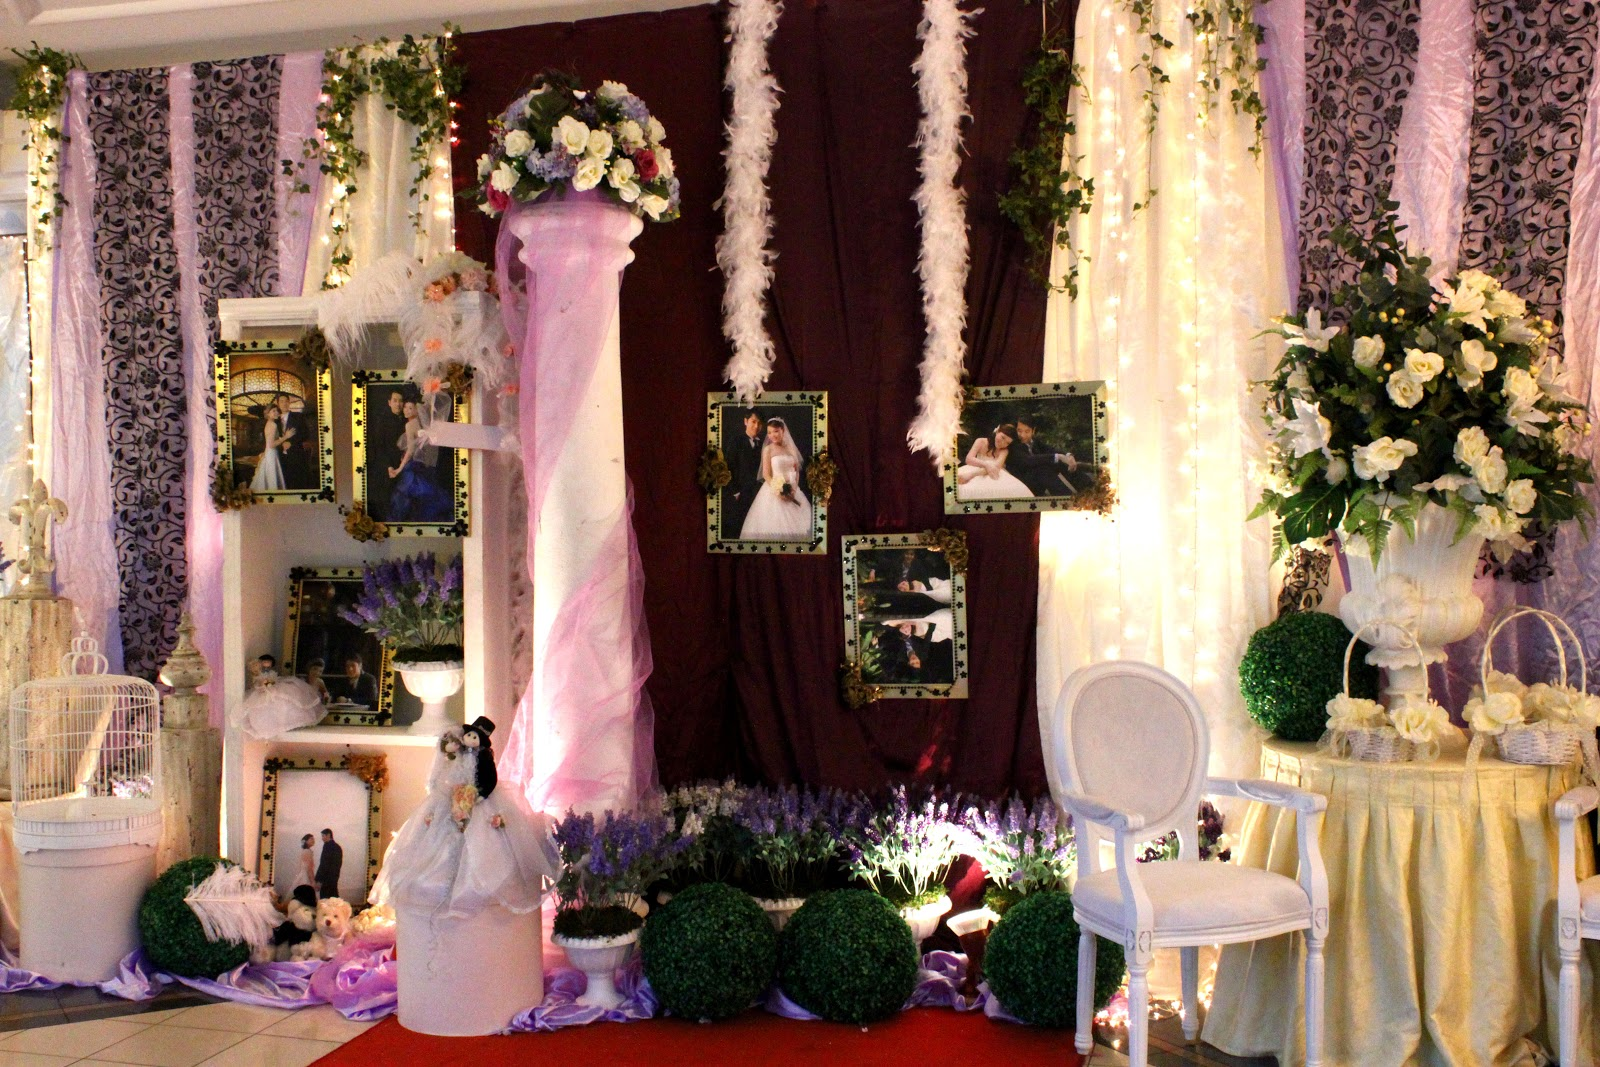 Penang wedding decoration dquest ventures 012 428 0578 penang wedding decoration led panel junglespirit Images